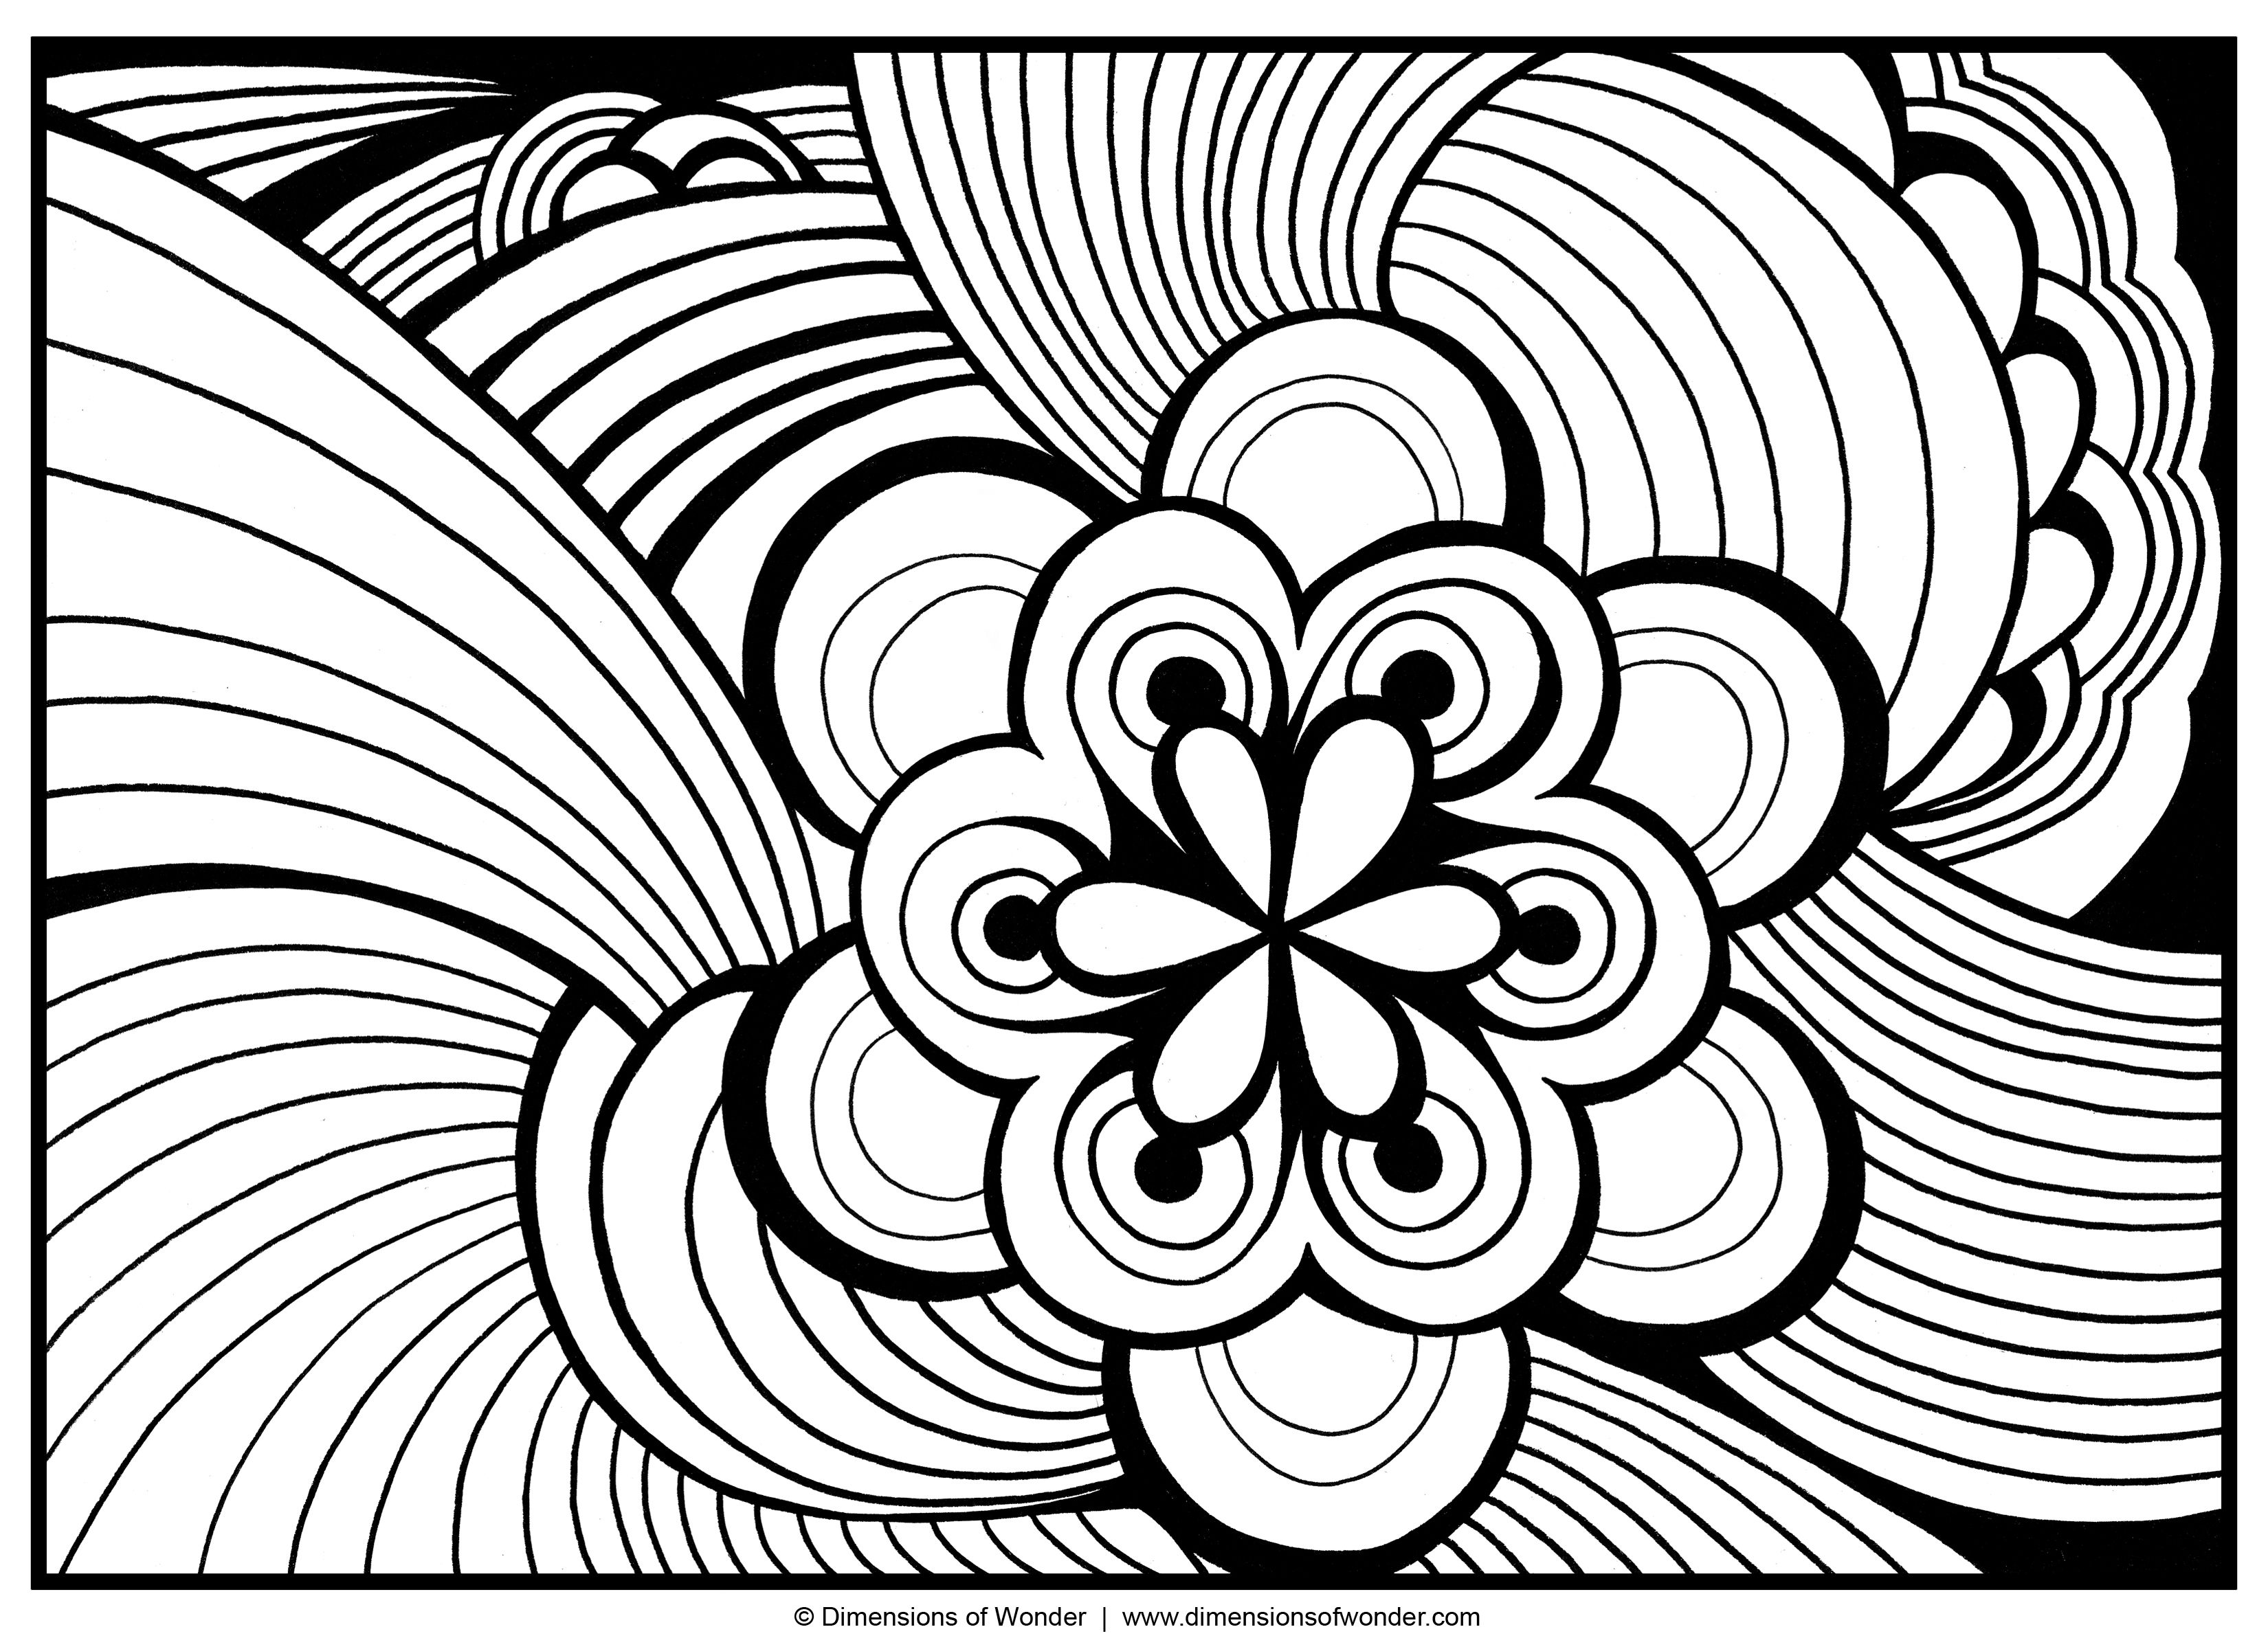 Abstract Shapes Coloring Pages : Abstract coloring pages free large images adult and